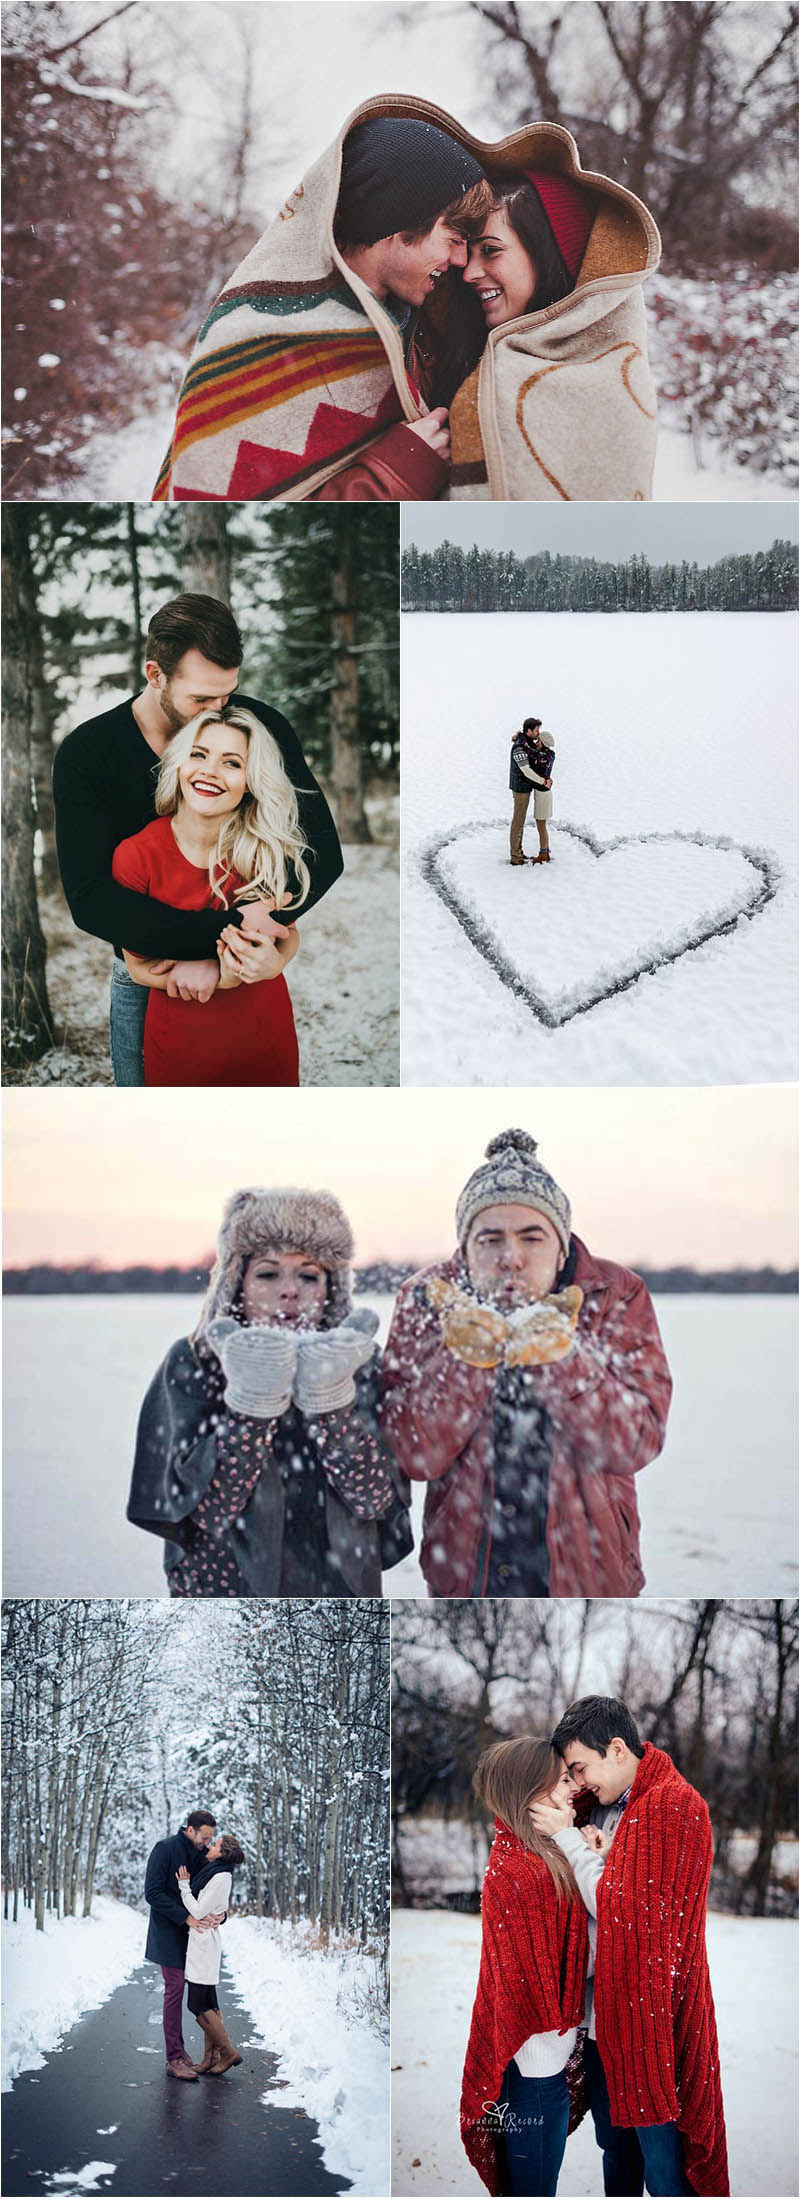 stylish winter engagement photo ideas